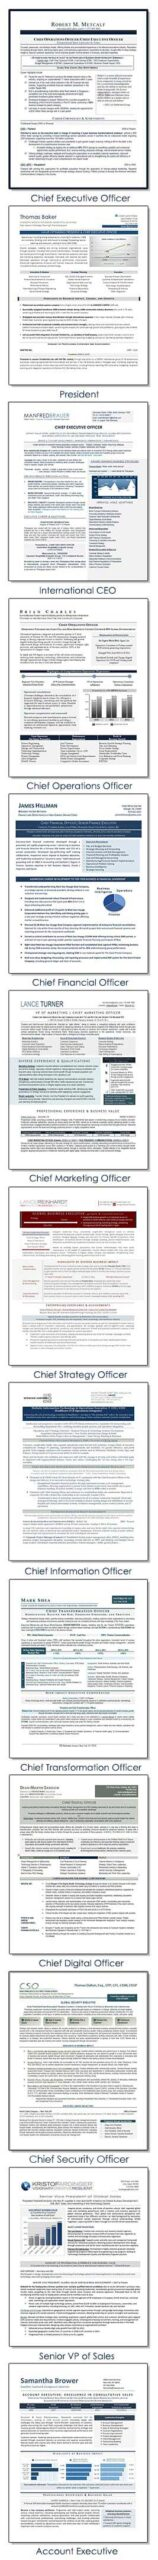 top executive resume writing services in and professional new best format for assistant Resume Professional Executive Resume Writing Services